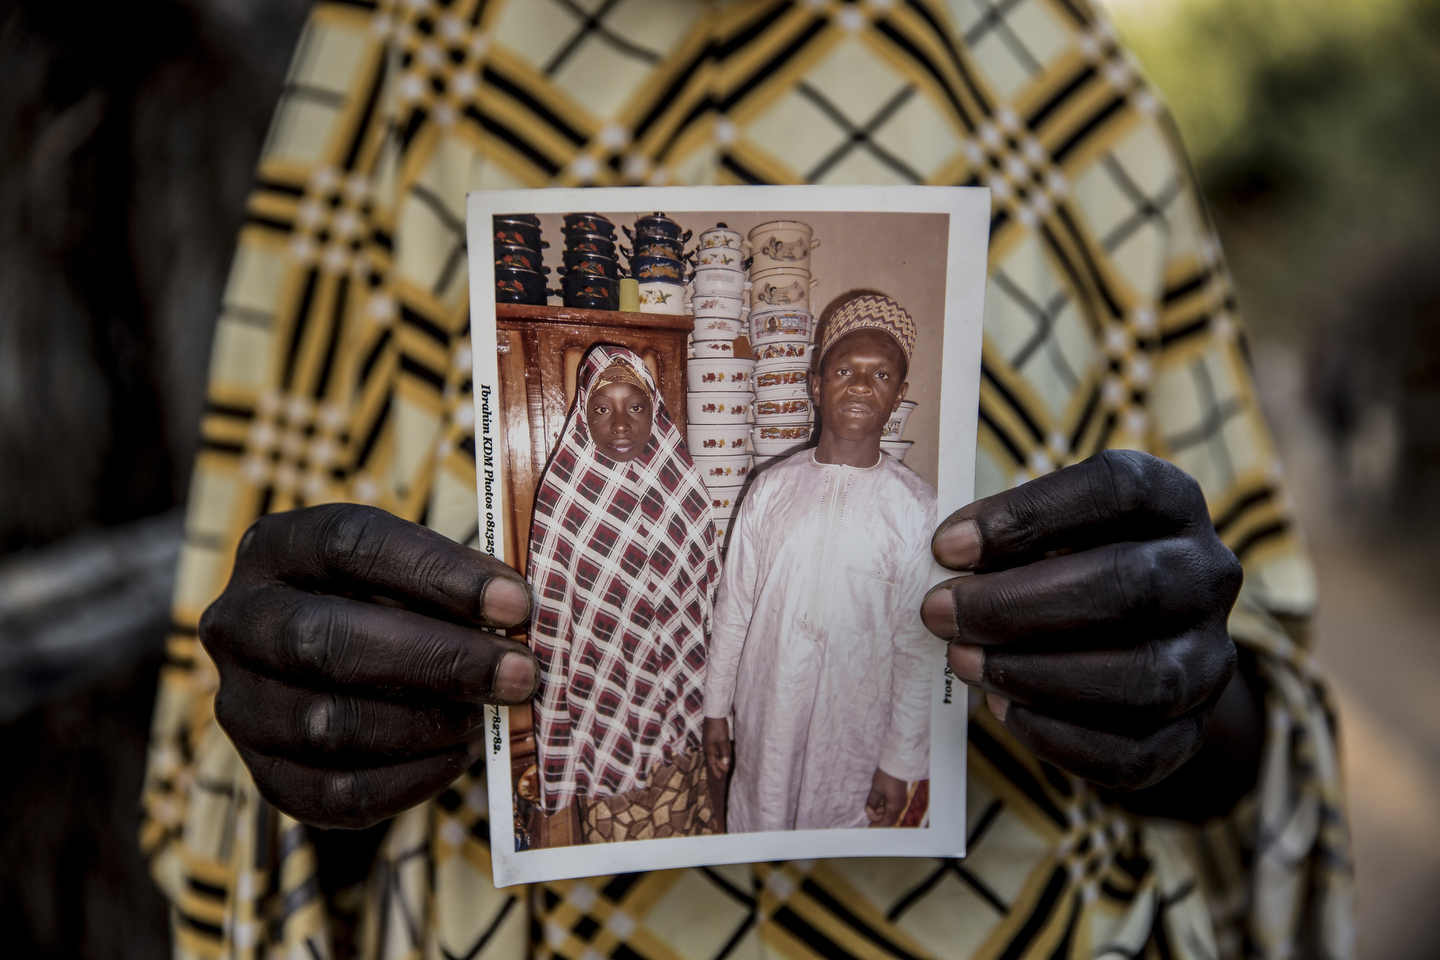 I didn't see a picture of Umaru until we went to his first wife's home in the third of the villages. Men in these ends take up to four wives, as the prophet did, with the main constraint being the cost of the dowry. Umaru had been married to a first wife for seven years when he could finally afford to buy the trinkets for Wasila.